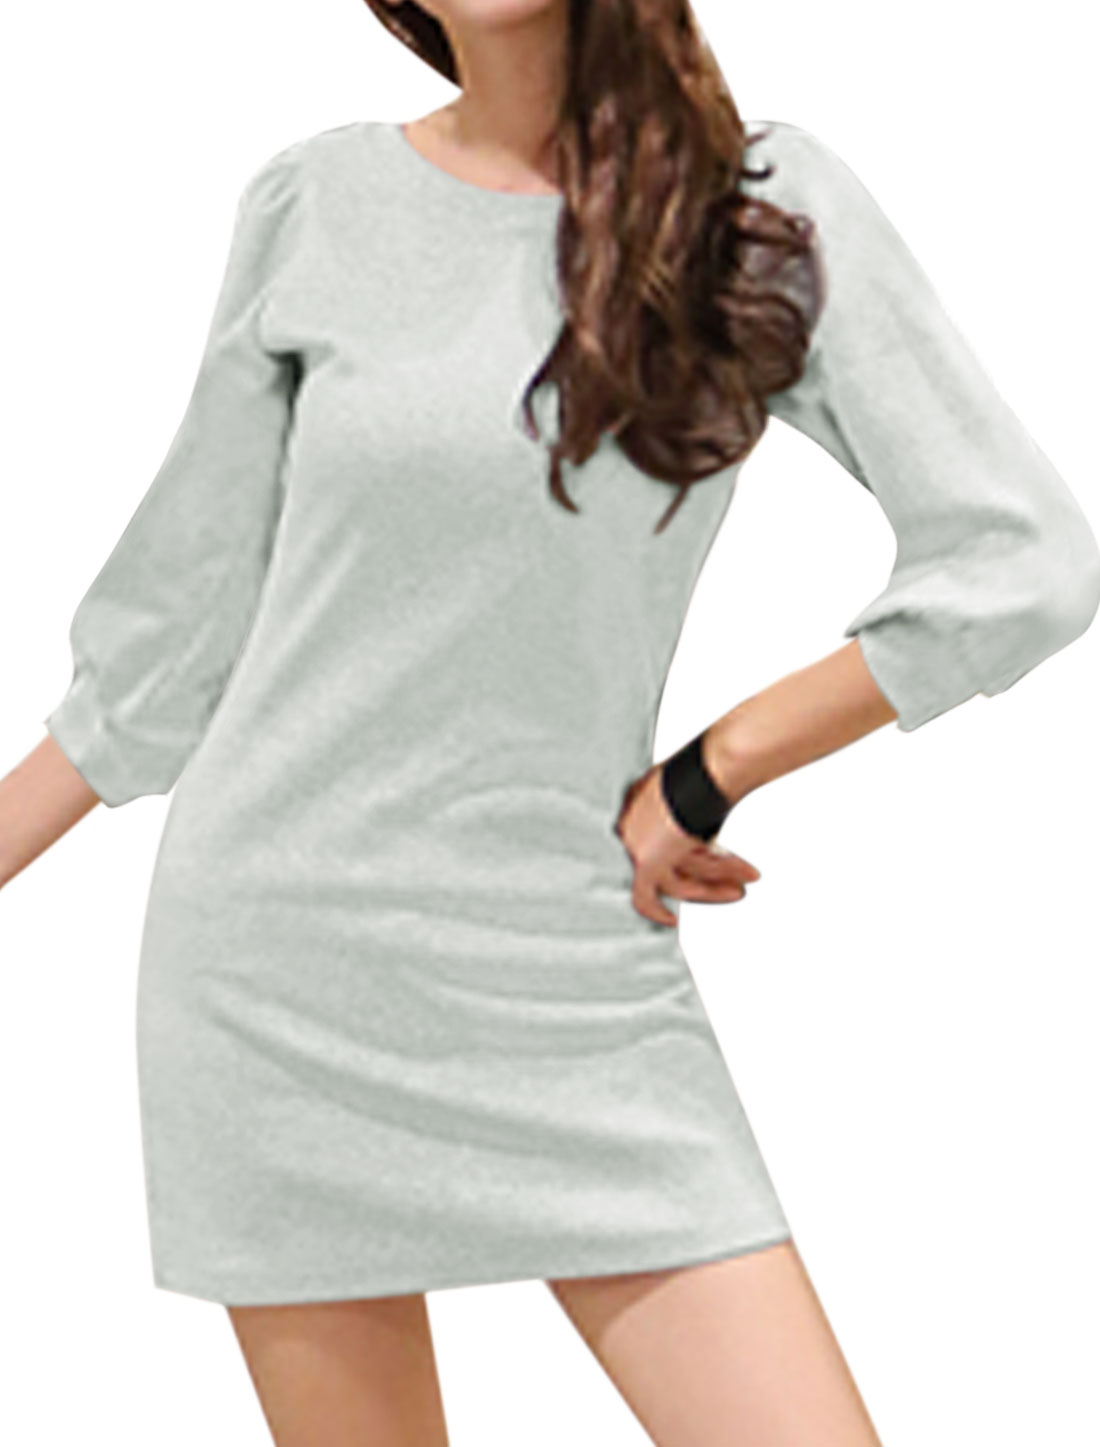 Woman Round Neck 3/4 Sleeves Slim Fit Tunic Dress Gray XS